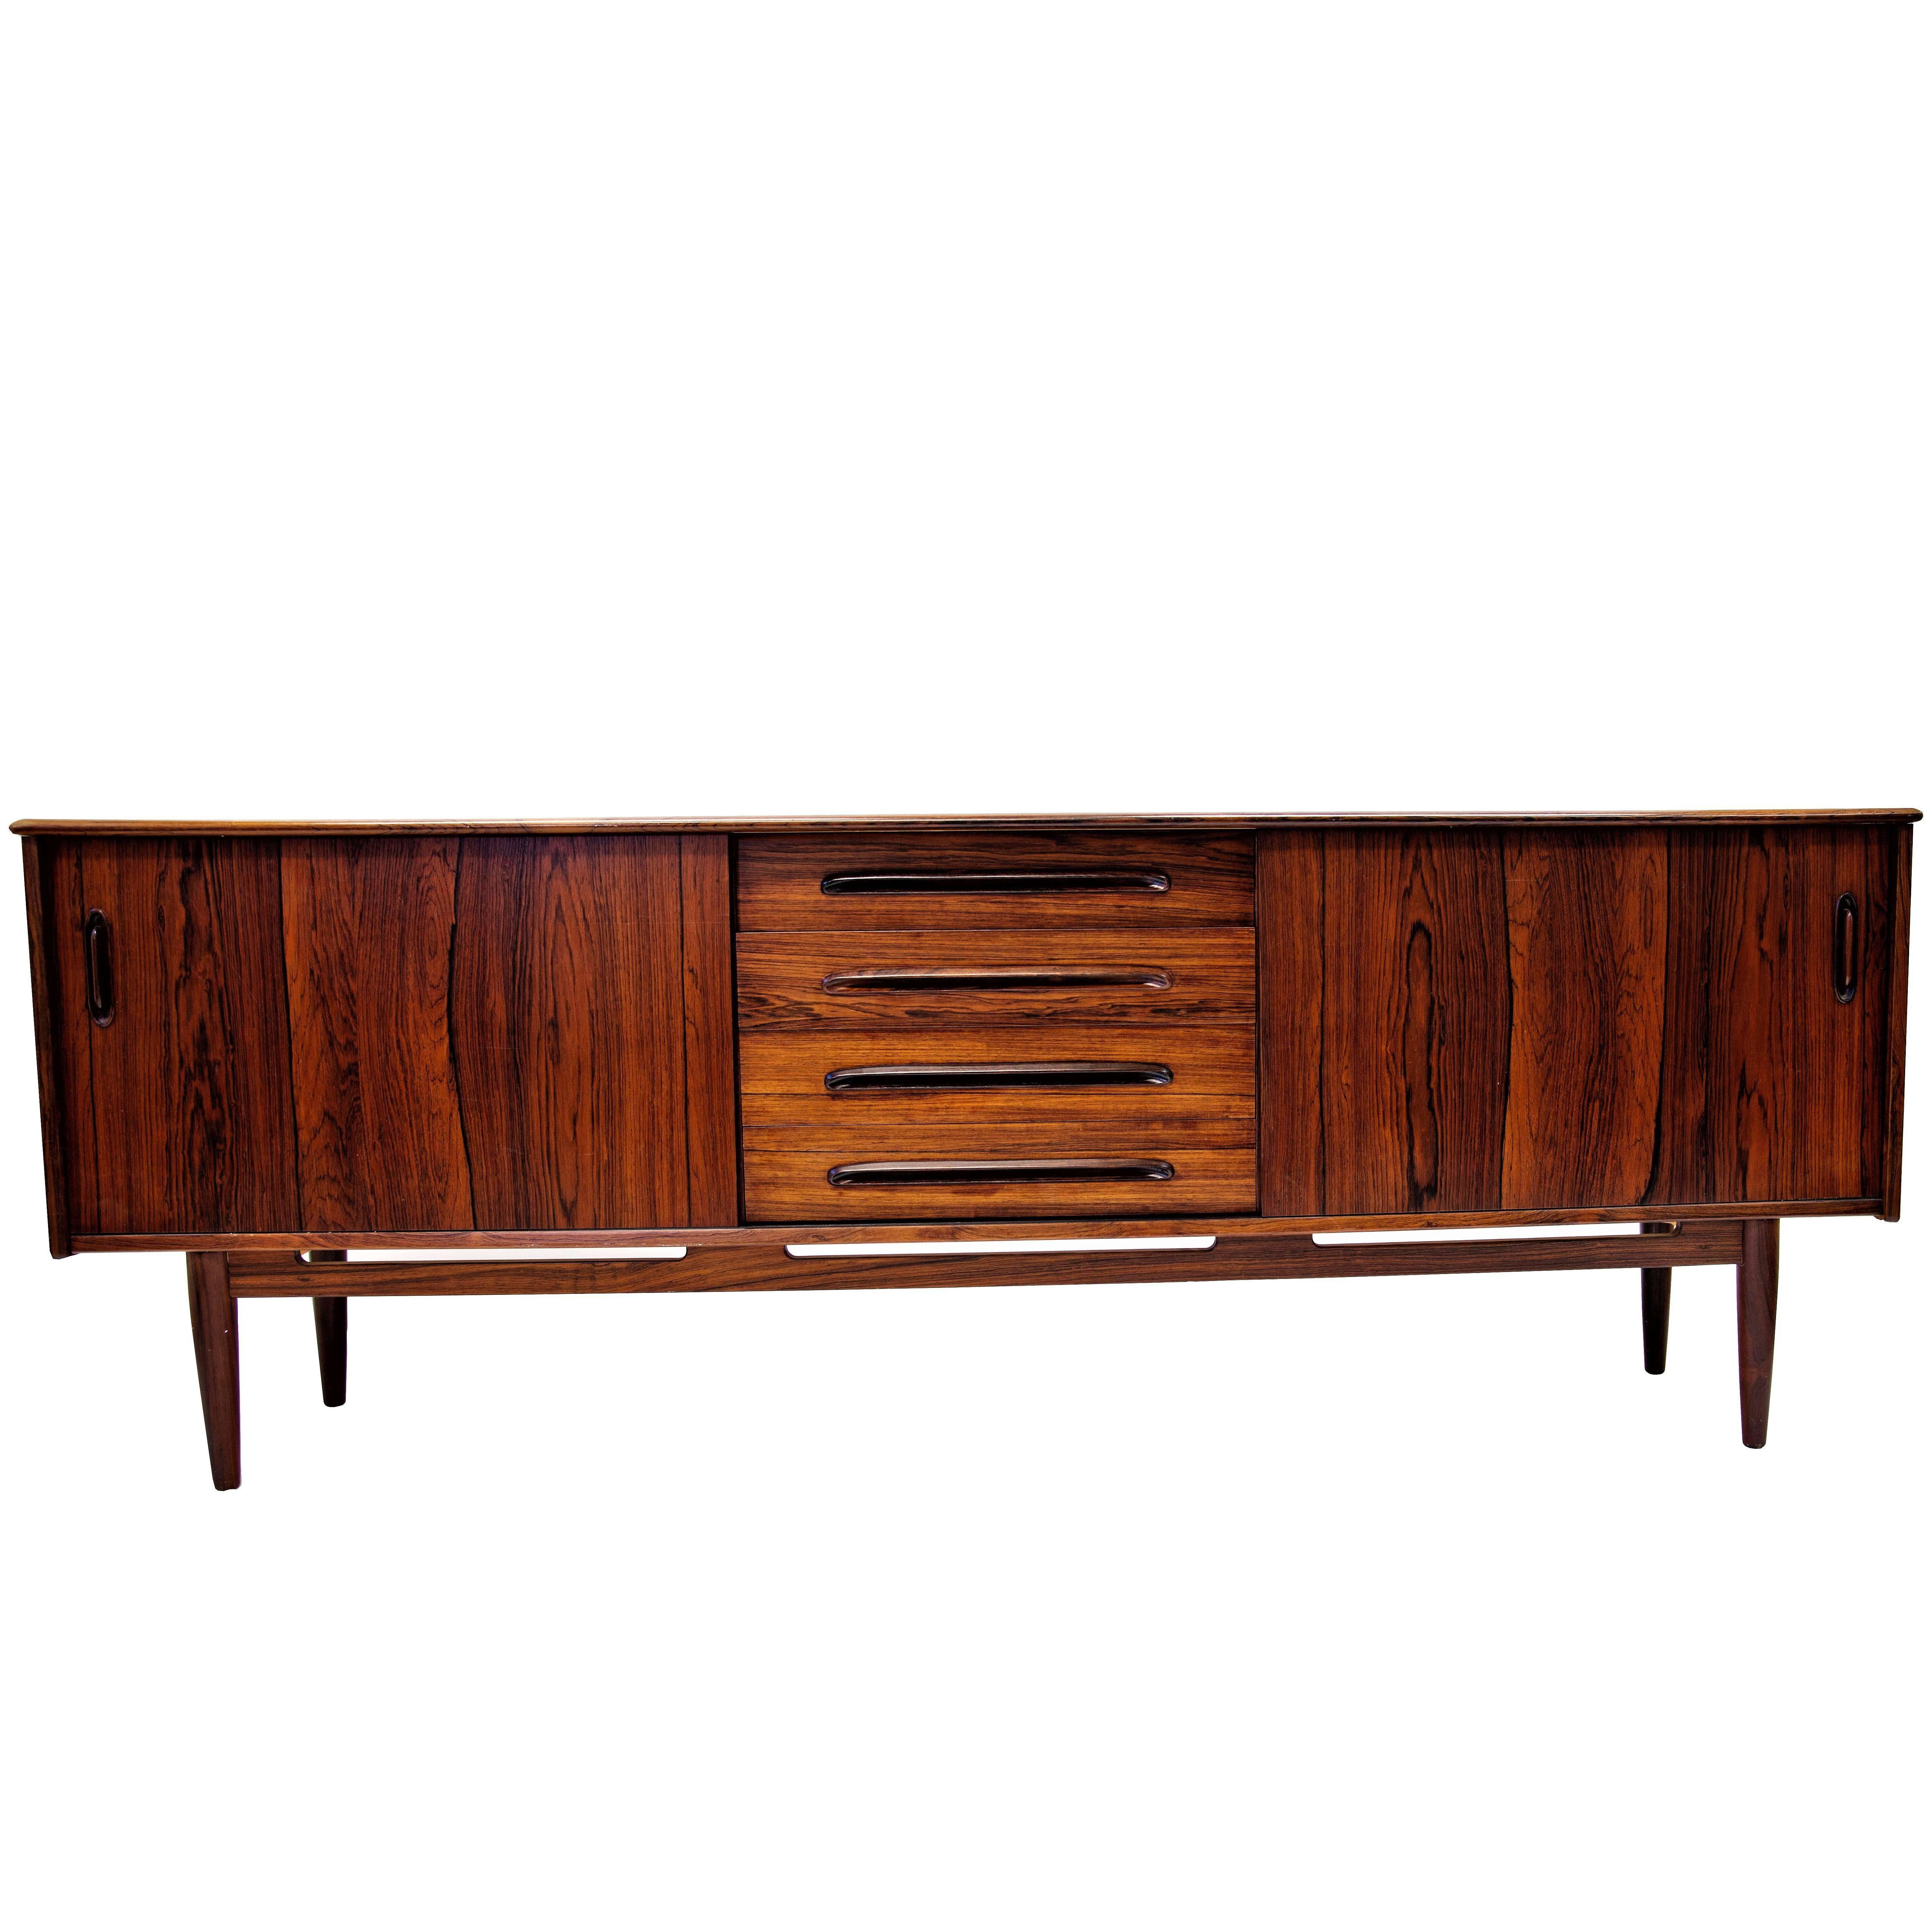 Pleasurable Loto Foot 7 Tags : 7 Foot Sideboard Buffet Tables And Pertaining To 7 Foot Sideboards (View 13 of 20)